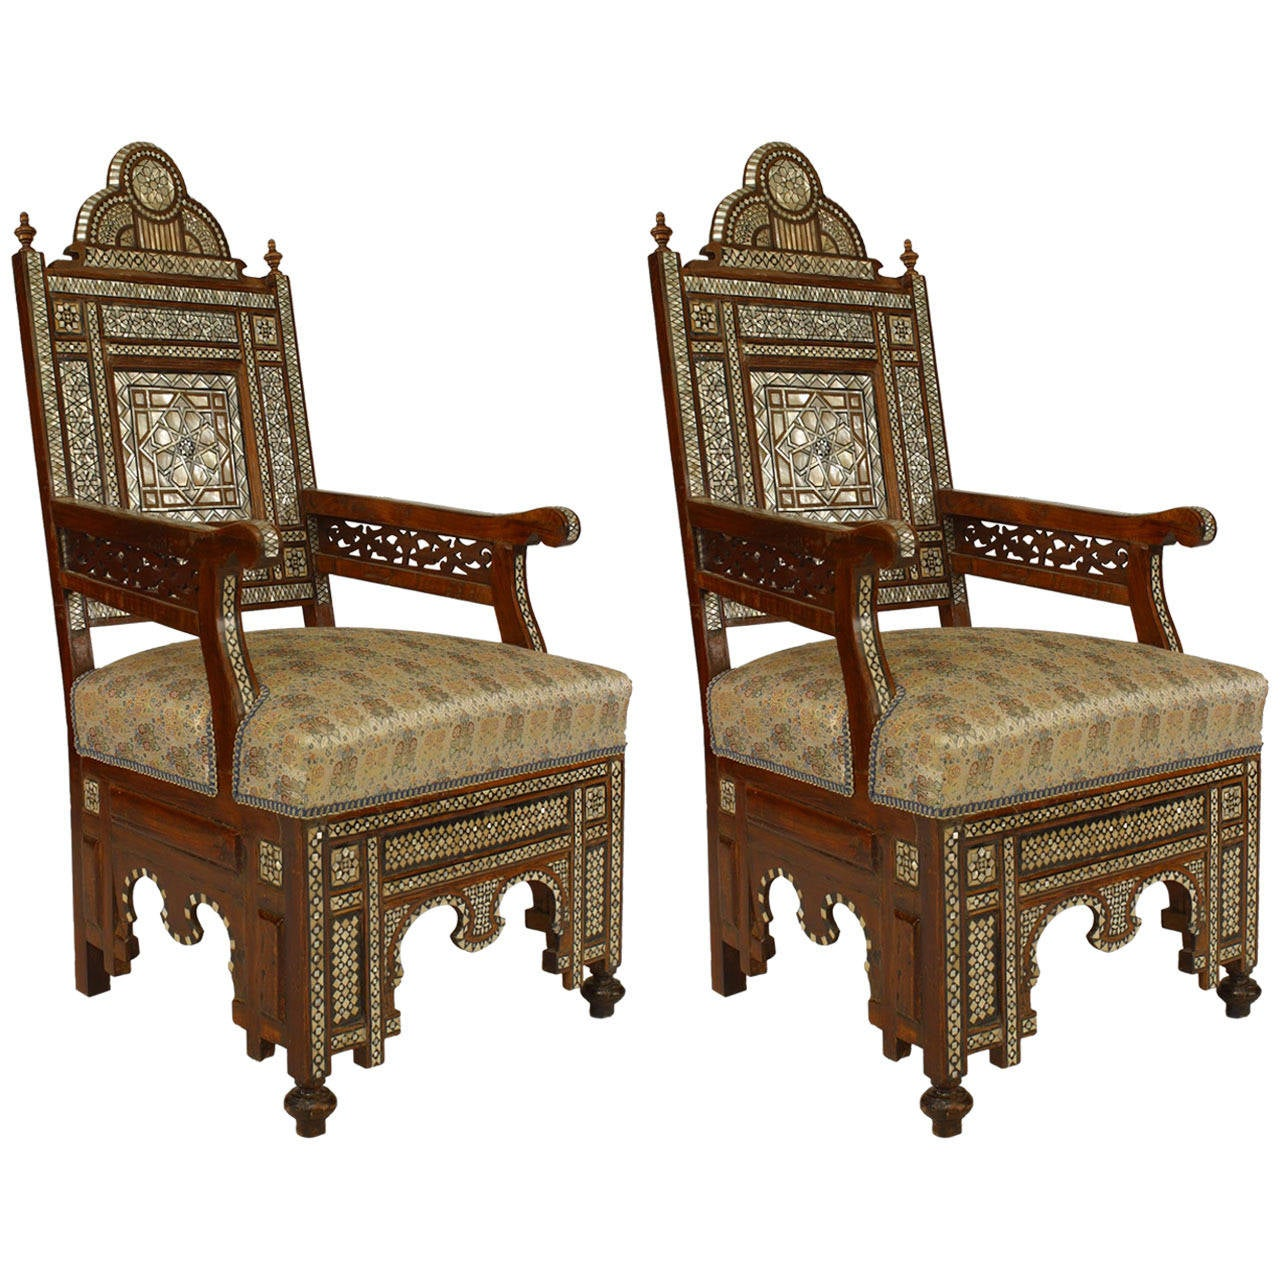 Pair Of 20th C Middle Eastern Or Moorish Style Inlaid High Back Armchairs For Sale At 1stdibs